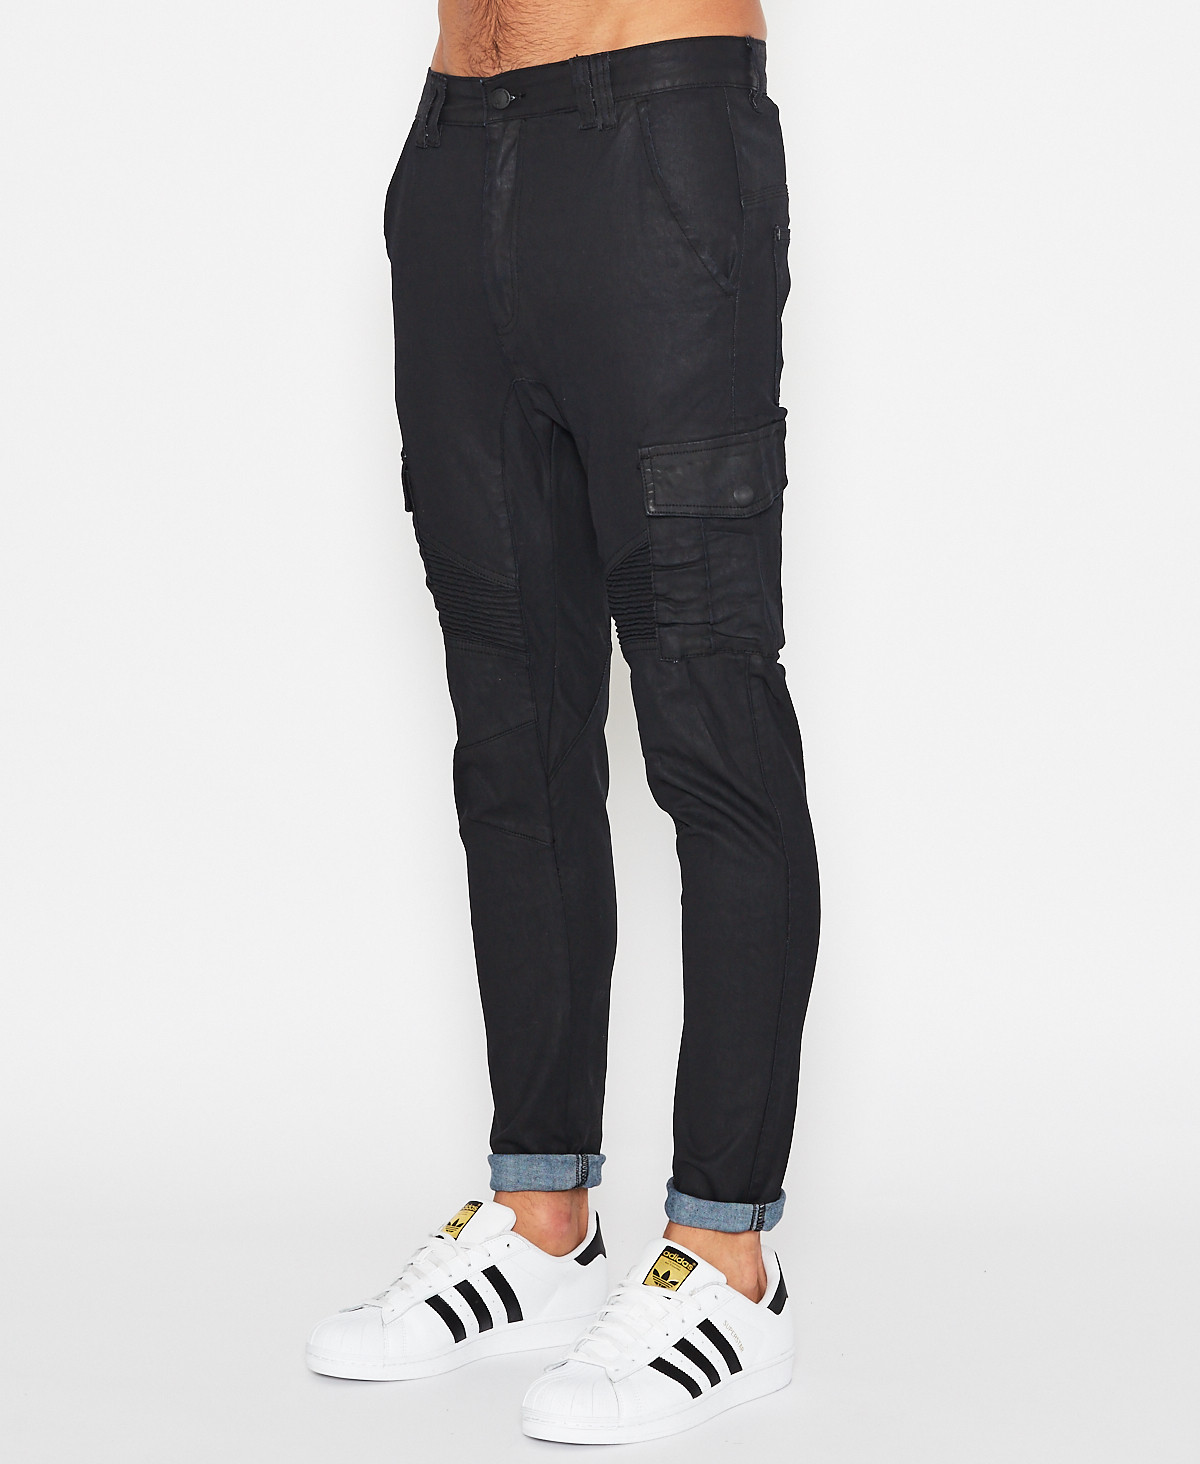 Typhoon pants typhoon pant wax blue/black URPVSDJ